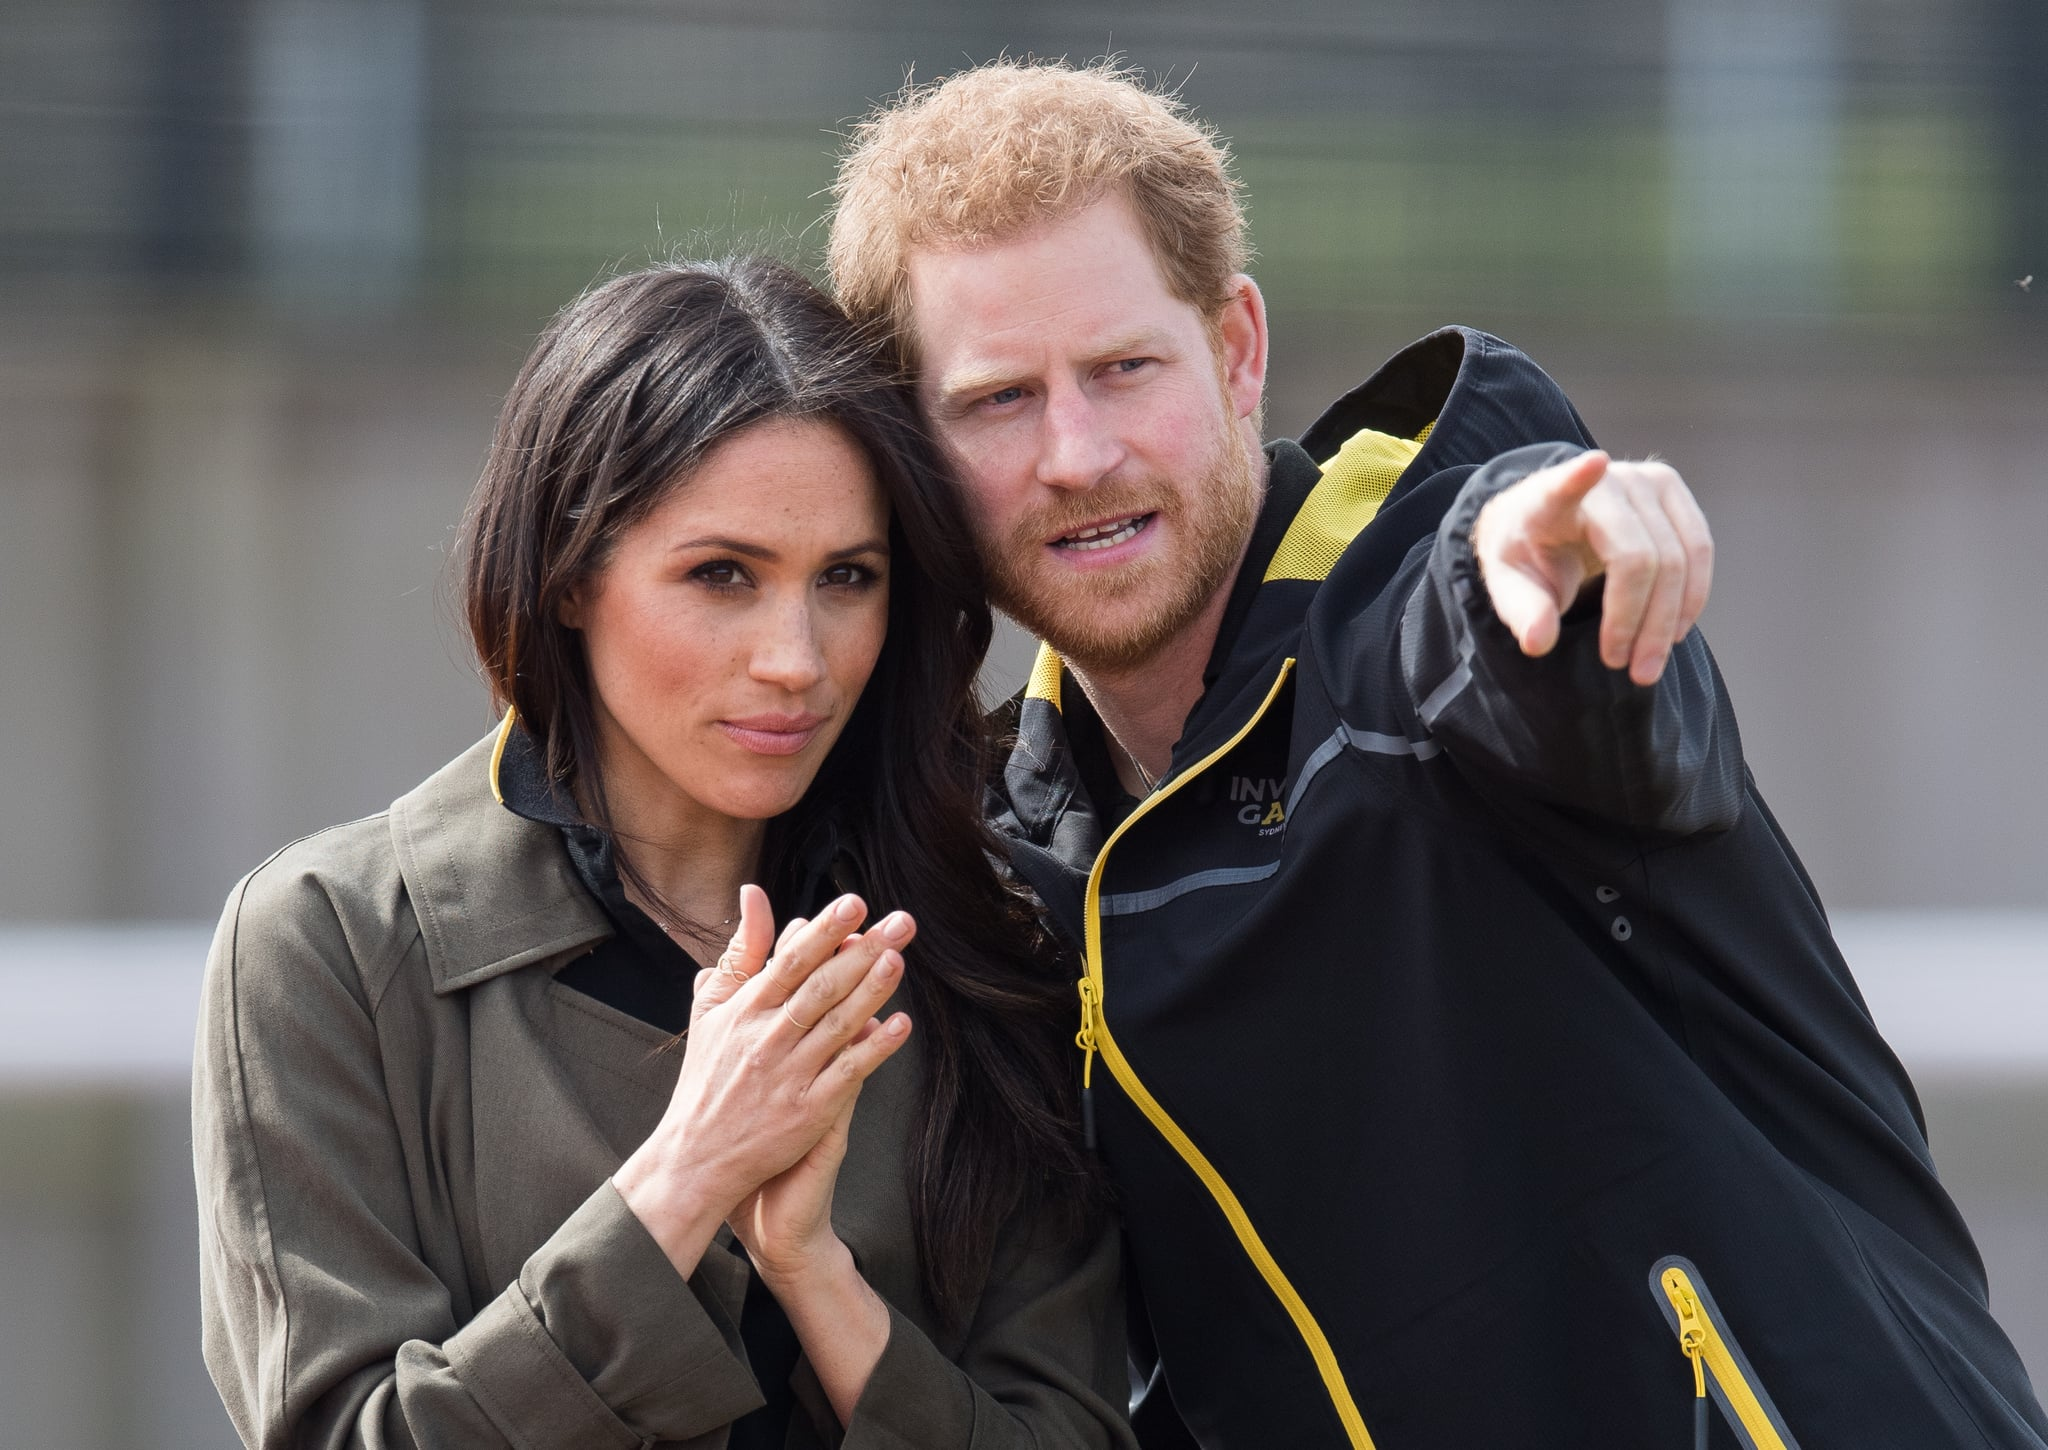 BATH, ENGLAND - APRIL 06:  Prince Harry and Meghan Markle attend the UK Team Trials for the Invictus Games Sydney 2018 at University of Bath on April 6, 2018 in Bath, England.  (Photo by Samir Hussein/WireImage)